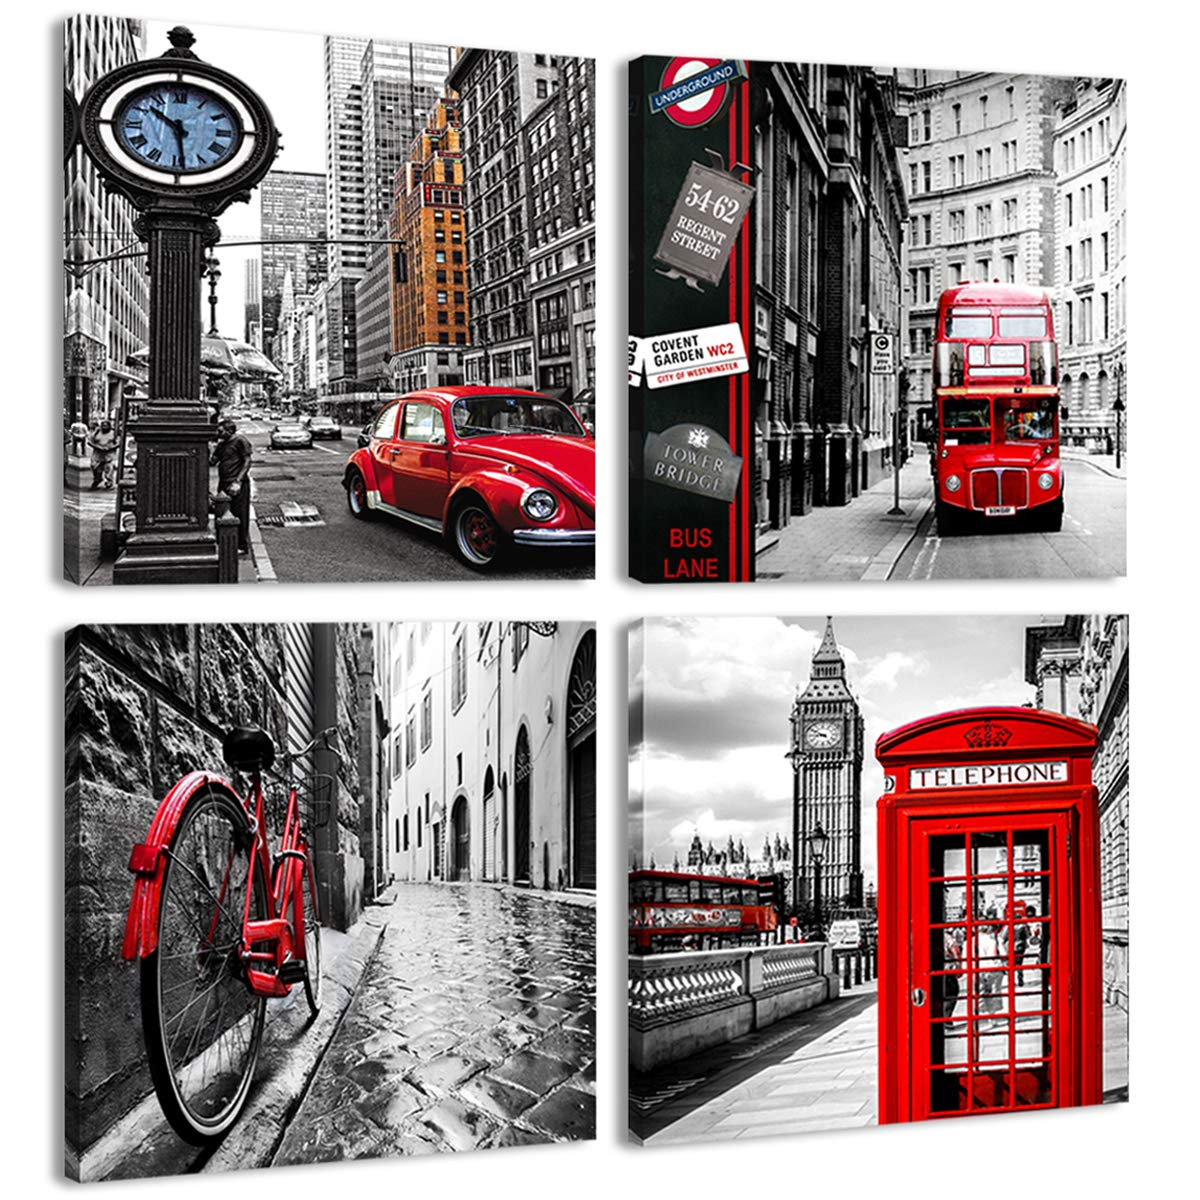 Amosi Art - Canvas Print Wall Art Painting 4 Panels London Street Scene Classical Red London Bus,Bridge and Tower City Painting Modern Art Picture Stretched by Framed Ready to Hang for Living Room Home Decoration (Black, 12x12inchx4pcs) Art0195